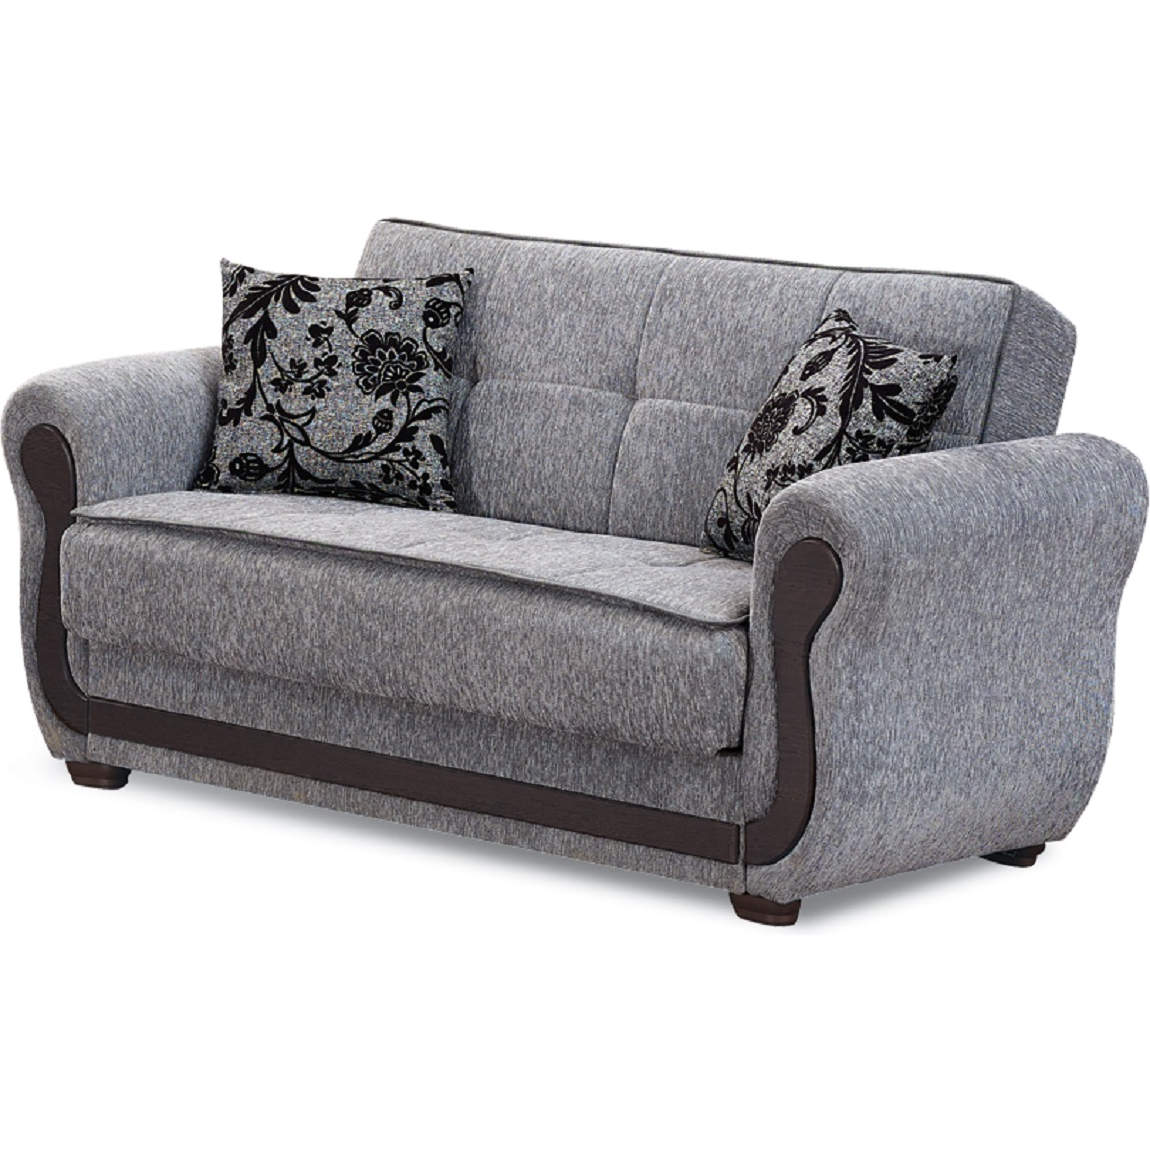 Surf Ave Convertible Loveseat in Light Grey Chenille by Empire Furniture